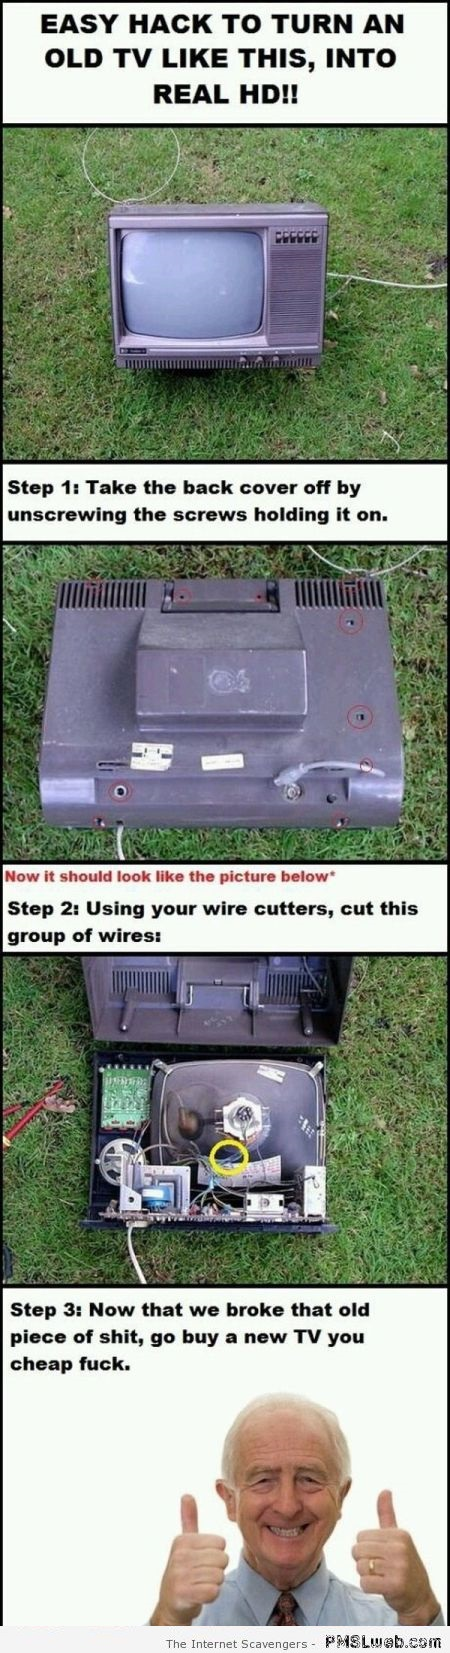 Funny hack to turn old tv into Hd at PMSLweb.com